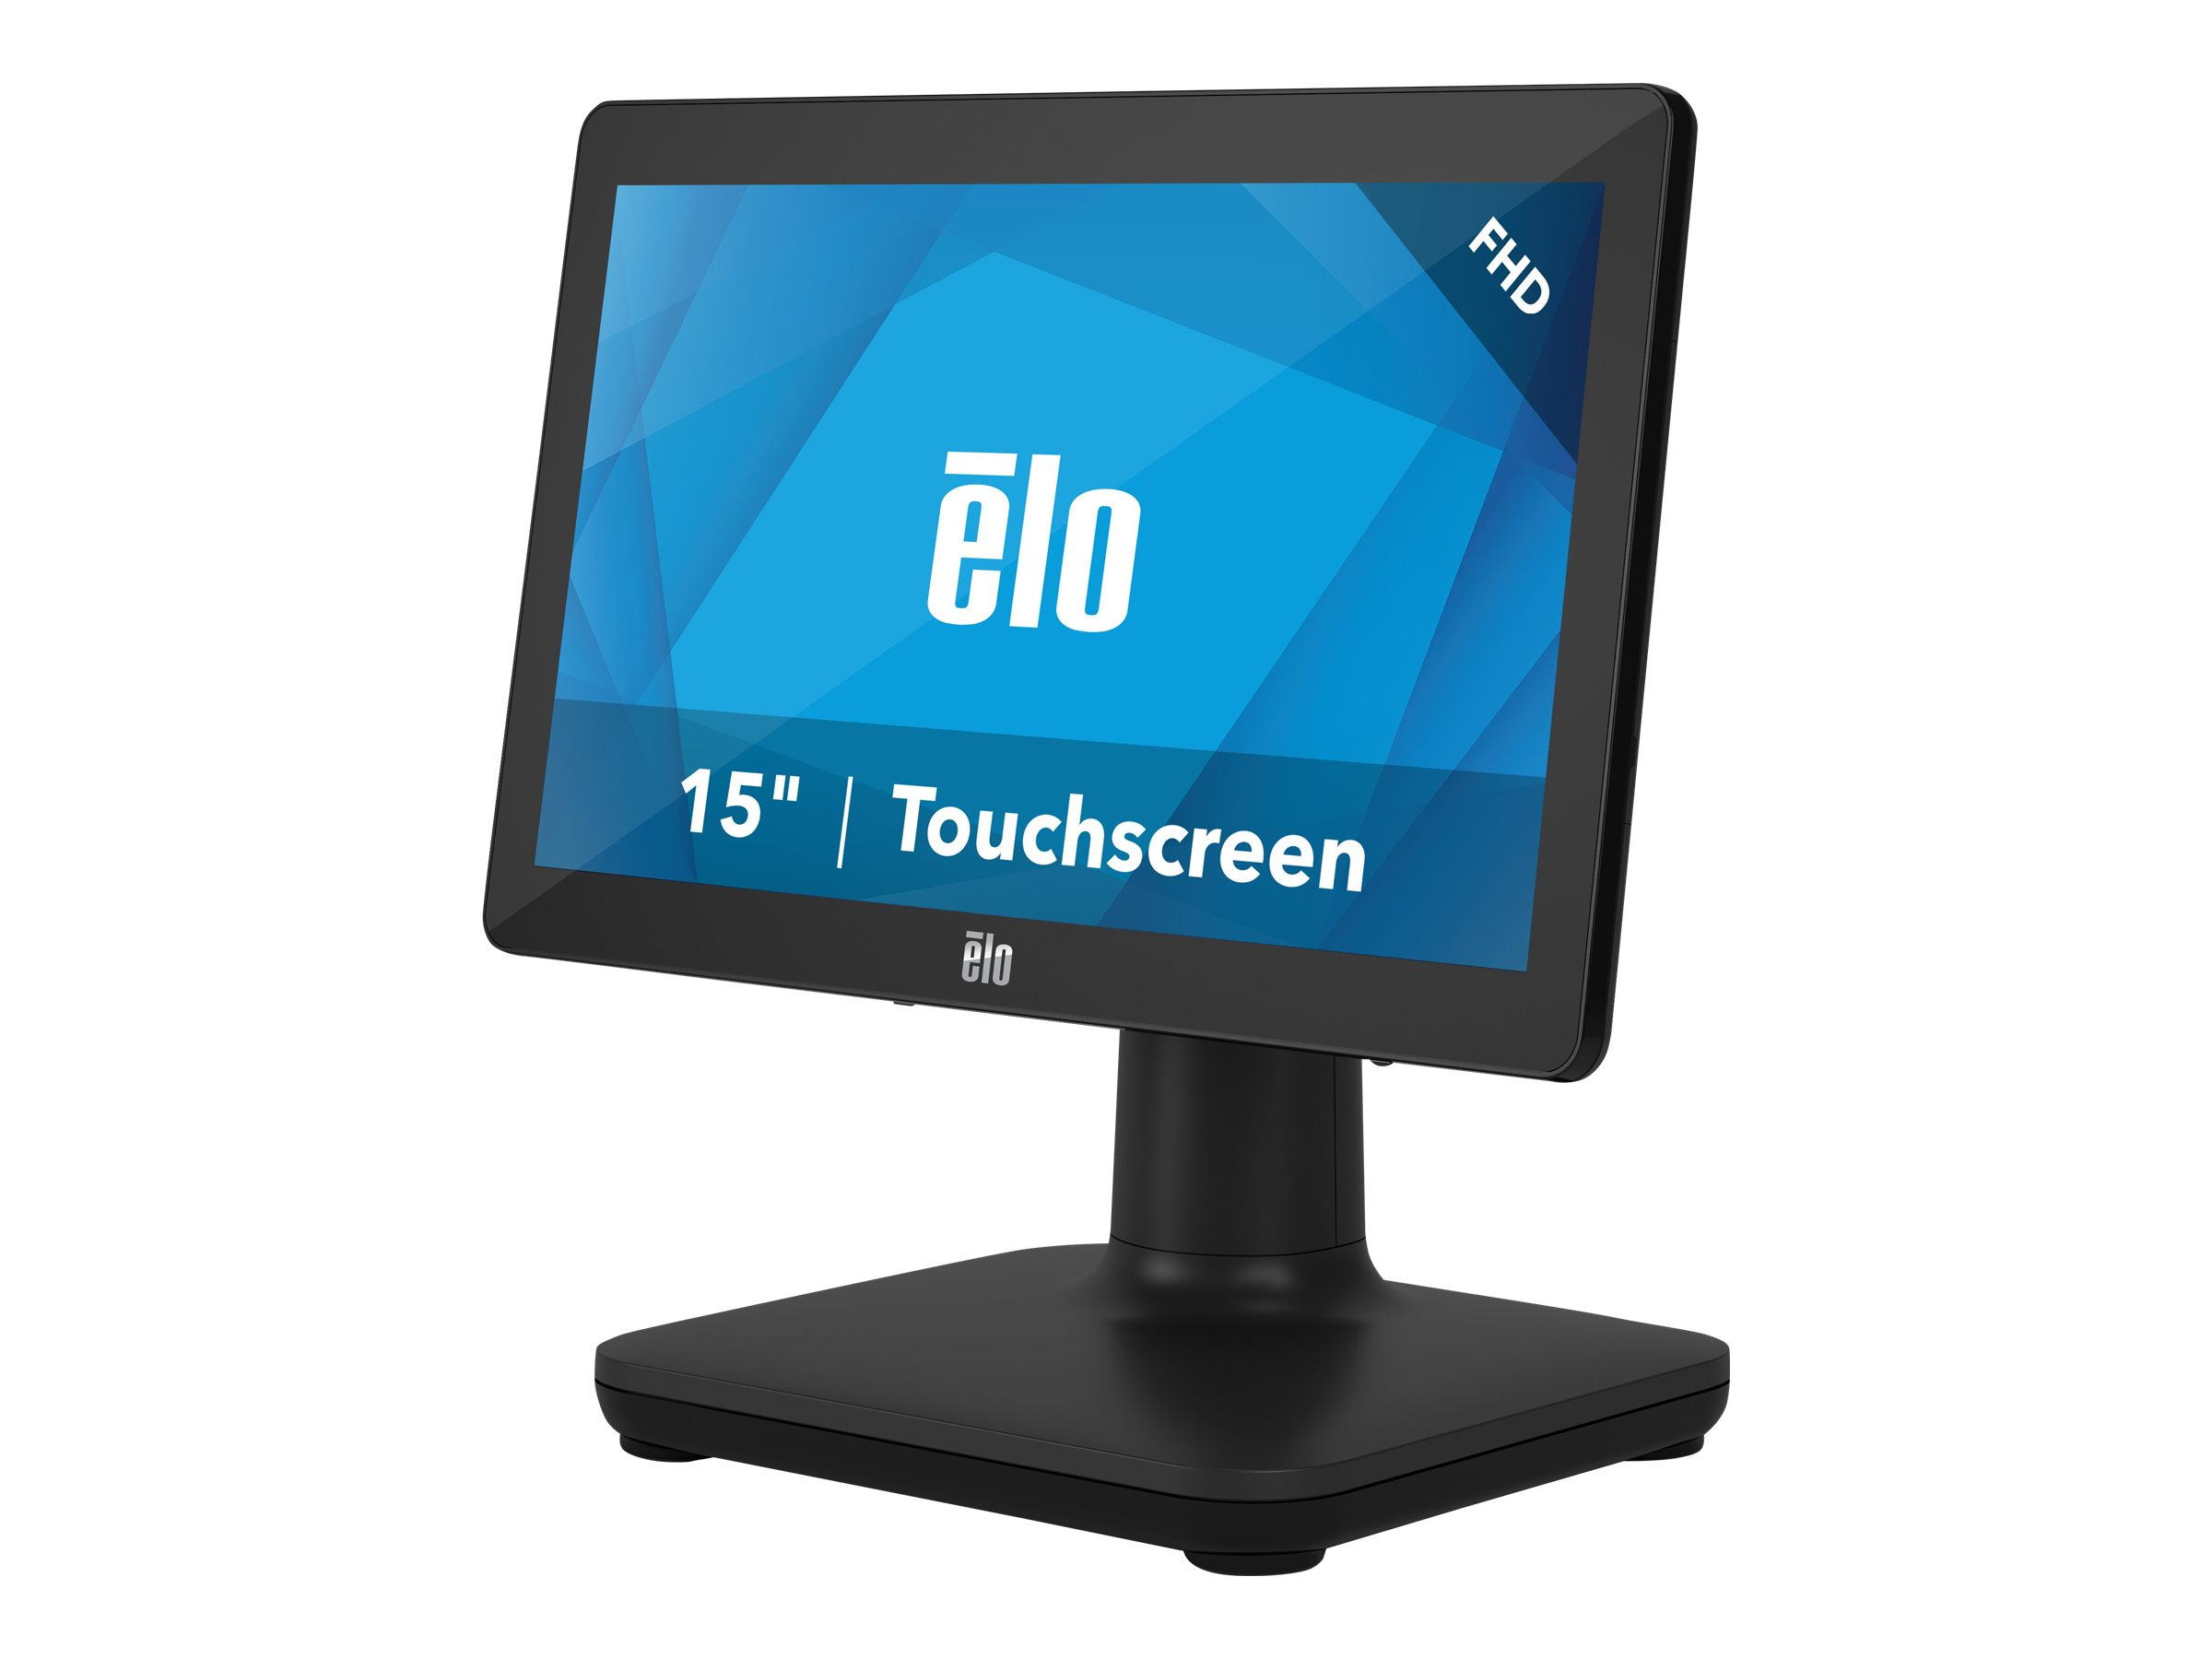 EloPOS System - with I/O Hub Stand - all-in-one - Core i5 8500T 2.1 GHz - 8 GB - SSD 128 GB - LED 15.6